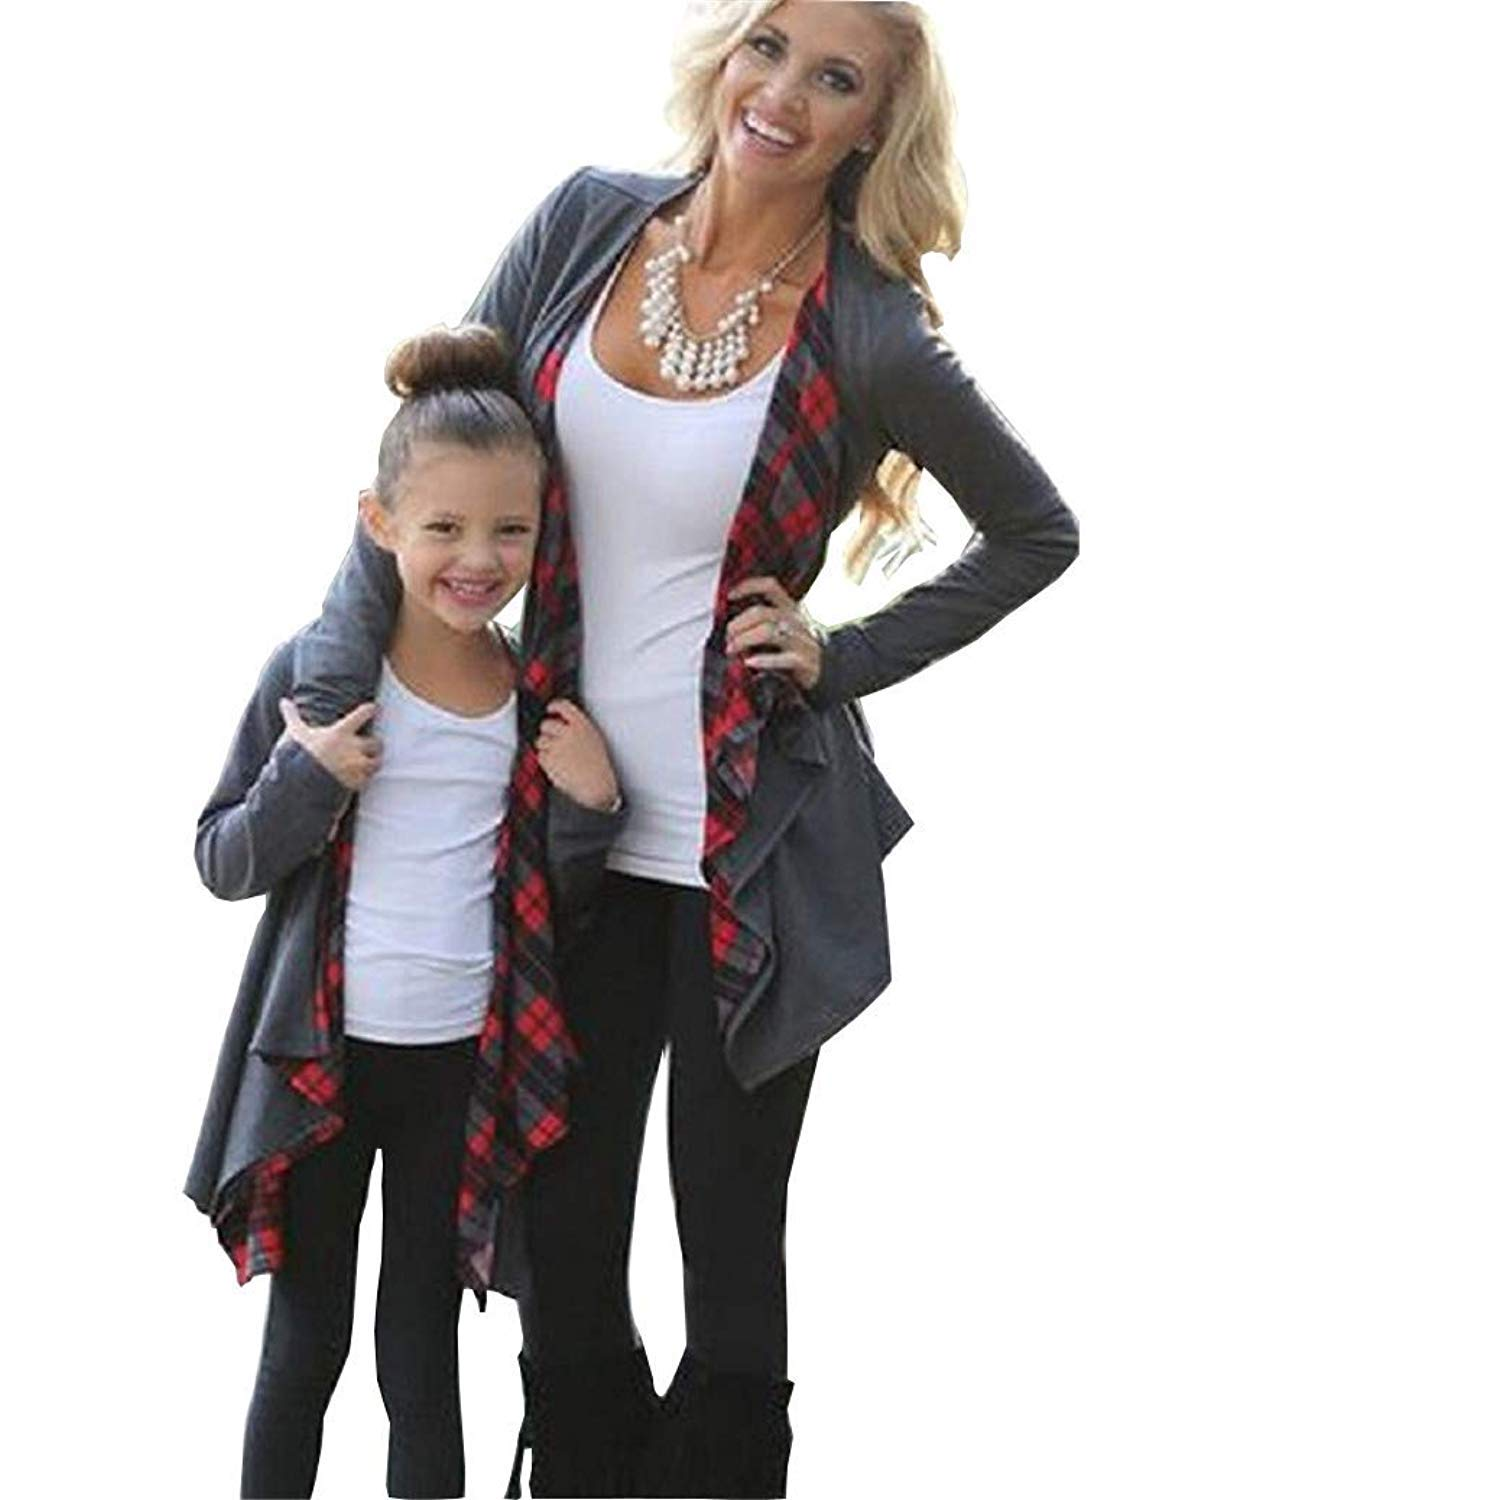 ZAWAPEMIA Mommy and Me Cardigan with Plaid Long Sleeve Open Front Sweater